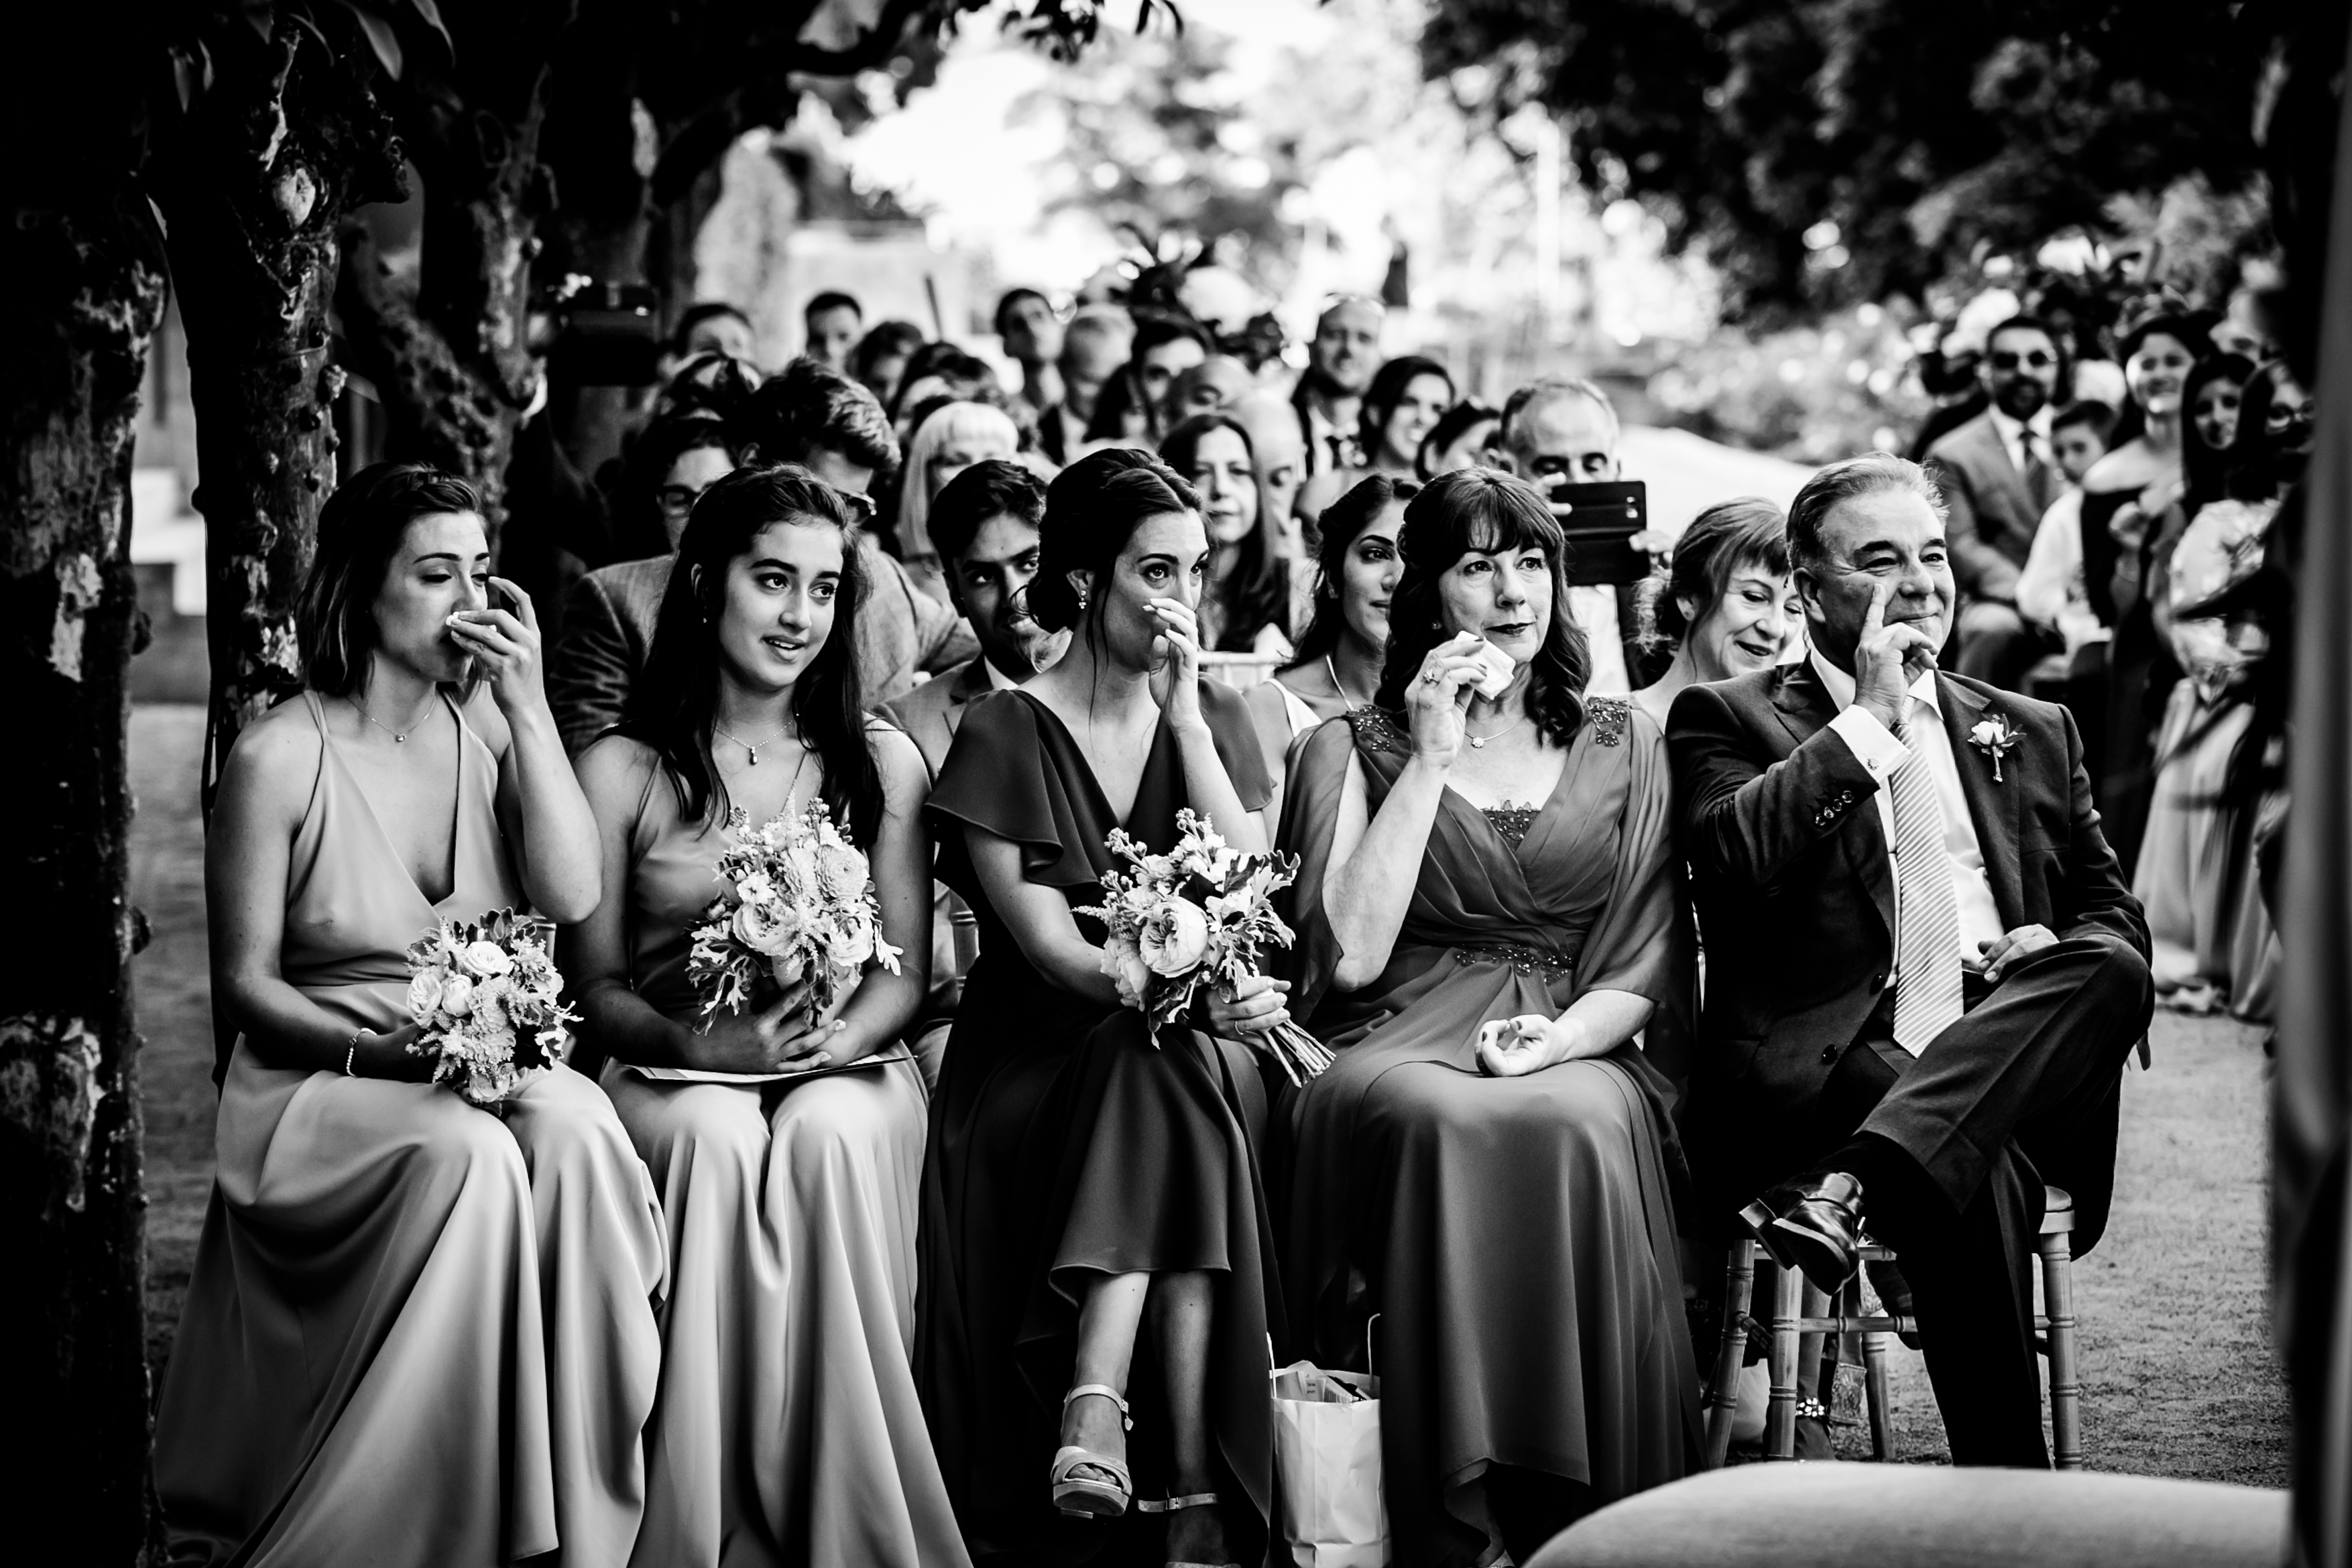 wedding hotel miramar, wedding barcelona, boda en hotel miramar, wedding center of barcelona, barcelona destination wedding, fotografo de bodas barcelona, barcelona wedding planner, wedding decor barcelona, destination wedding photographer, barcelona WP